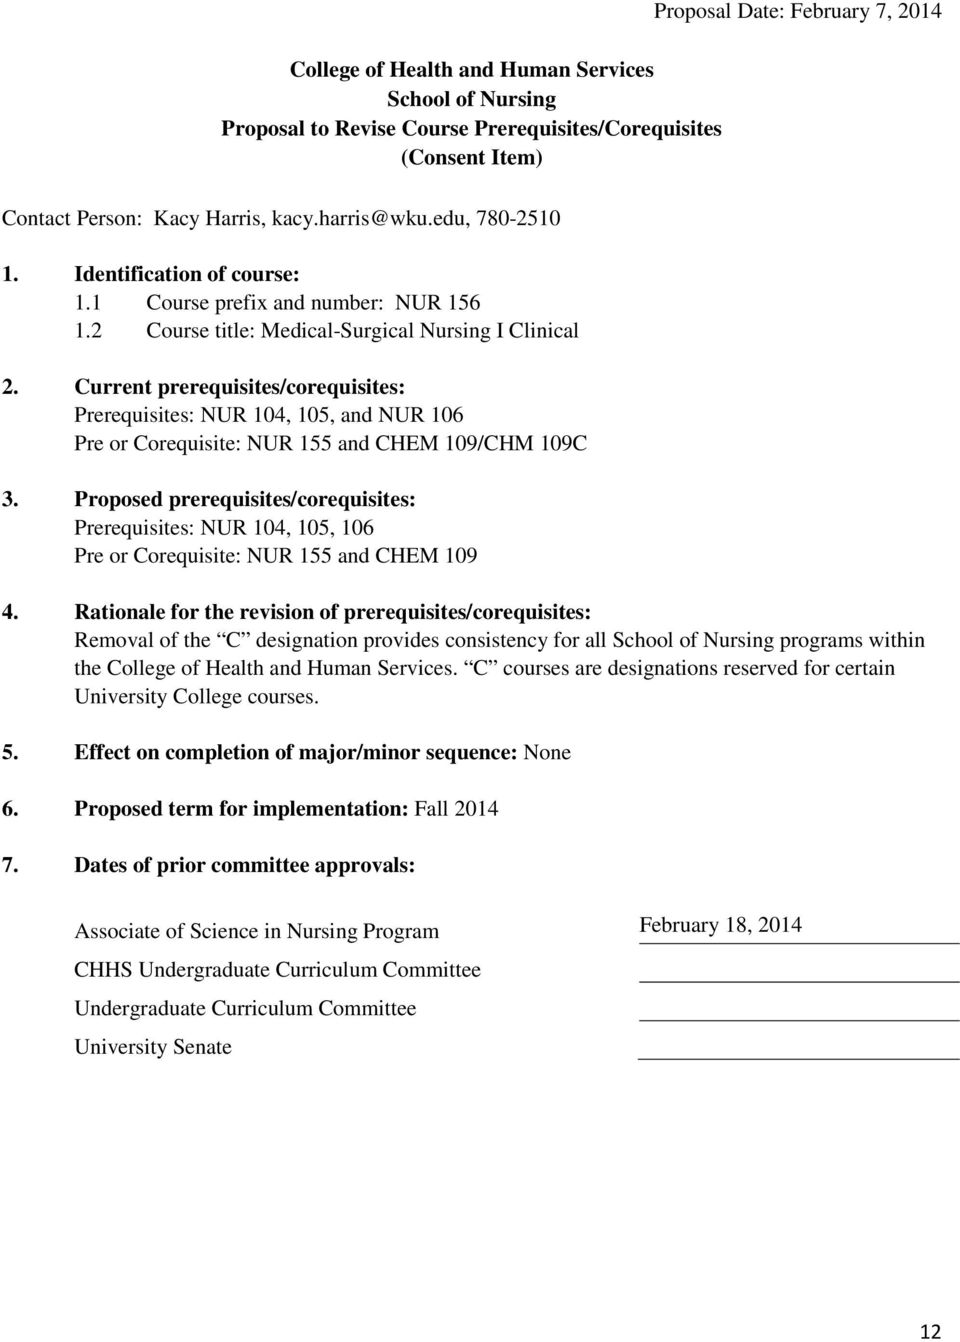 Proposed prerequisites/corequisites: Prerequisites: NUR 104, 105, 106 Pre or Corequisite: NUR 155 and CHEM 109 Proposal Date: February 7, 2014 4.